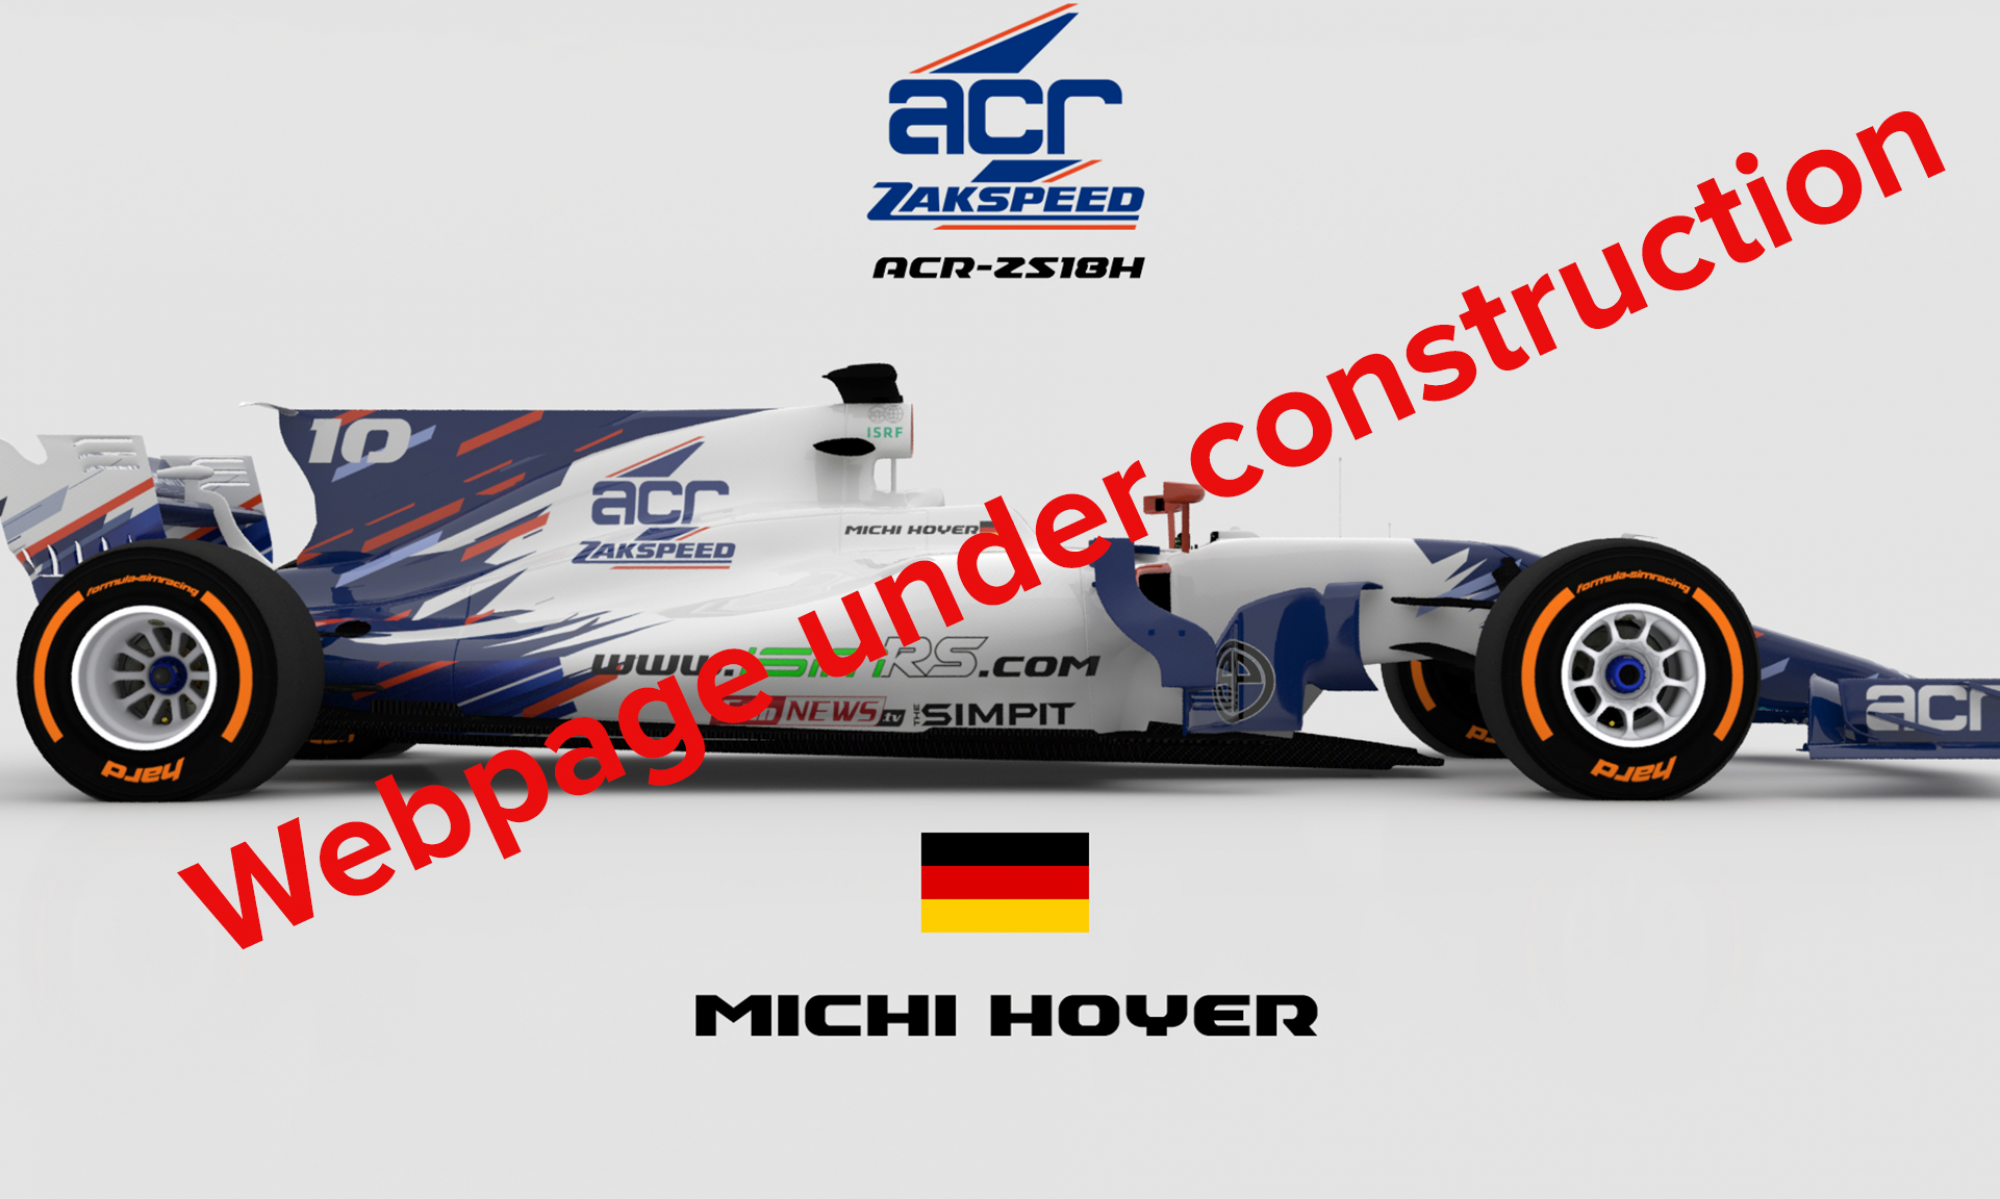 Michi Hoyer Simracing & more